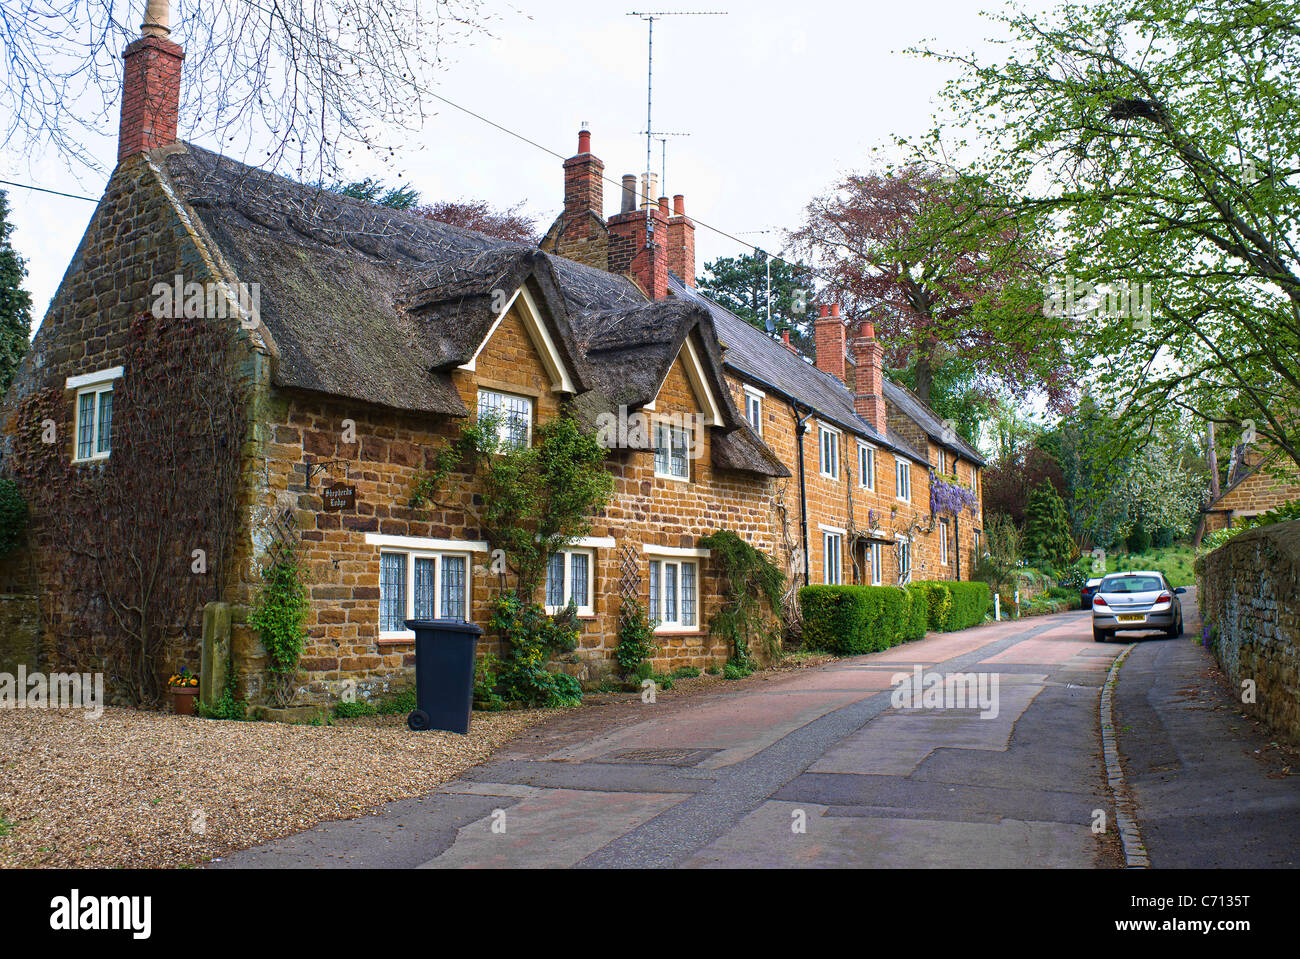 Old cottages in village of Church Brampton Northamptonshire UK - Stock Image